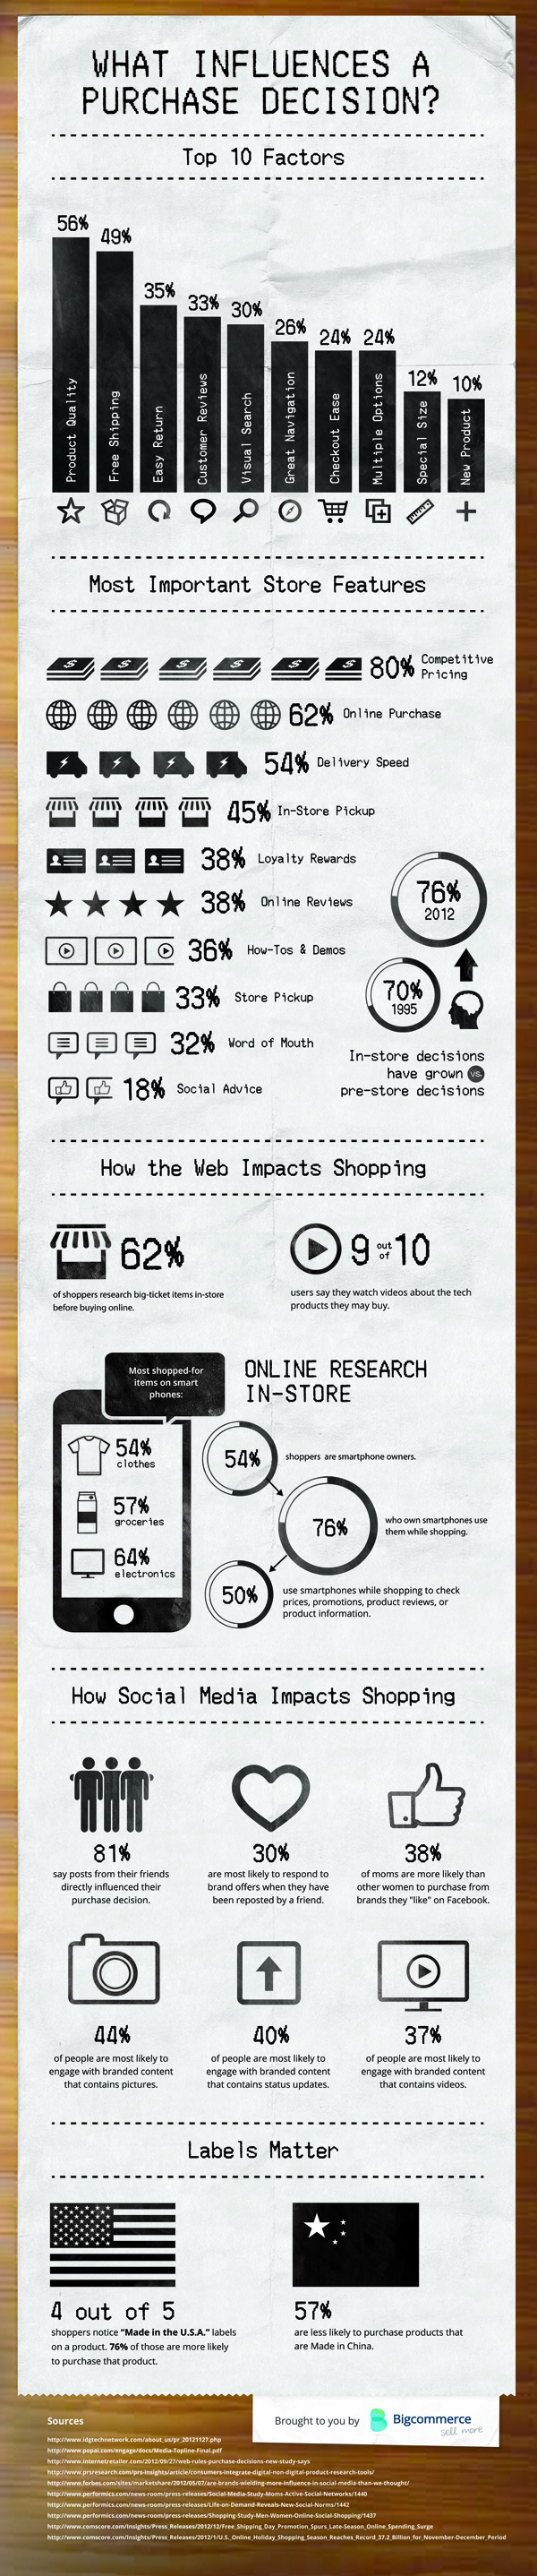 Influences-Purchase-Decision-Infographic